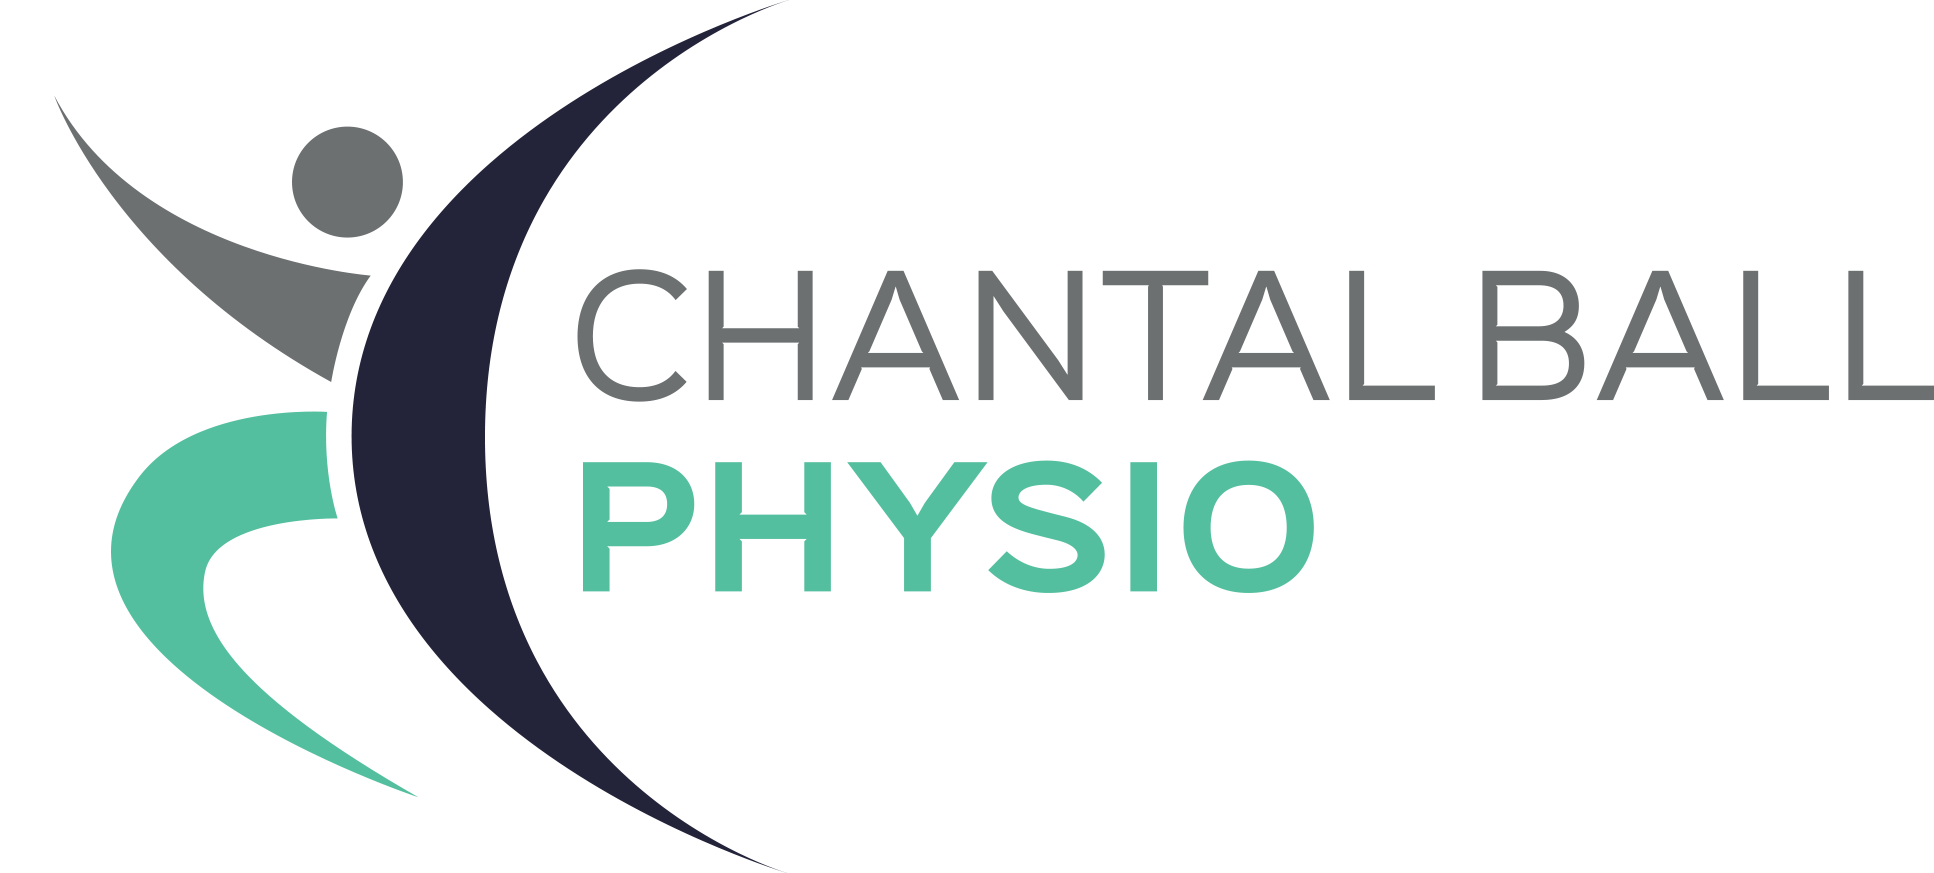 Chantal Ball Physio